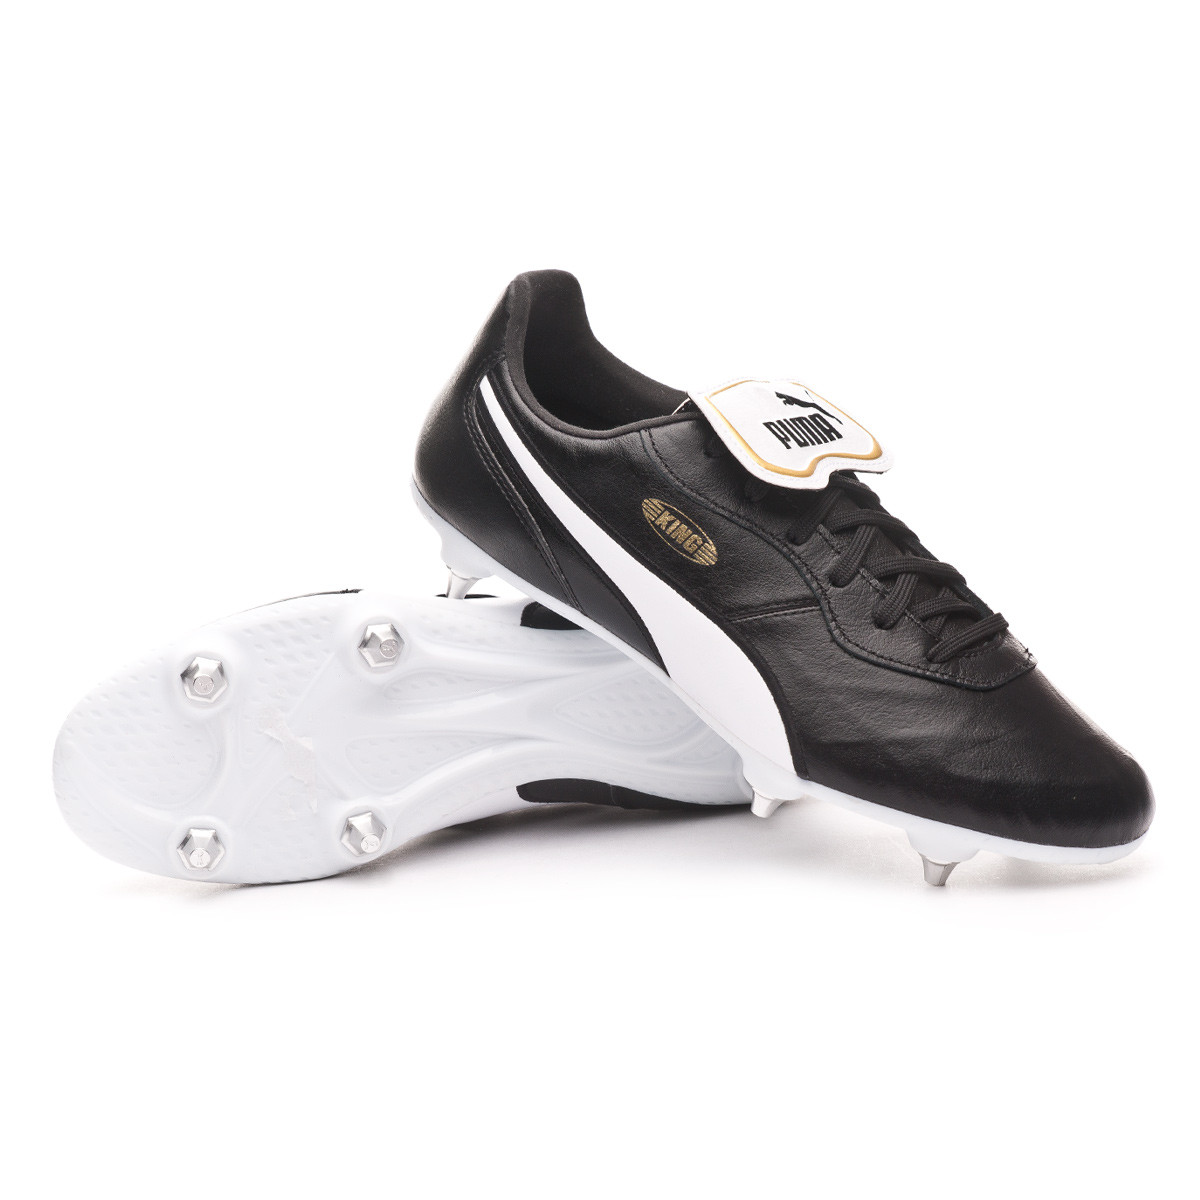 Chaussure de foot Puma King Top SG